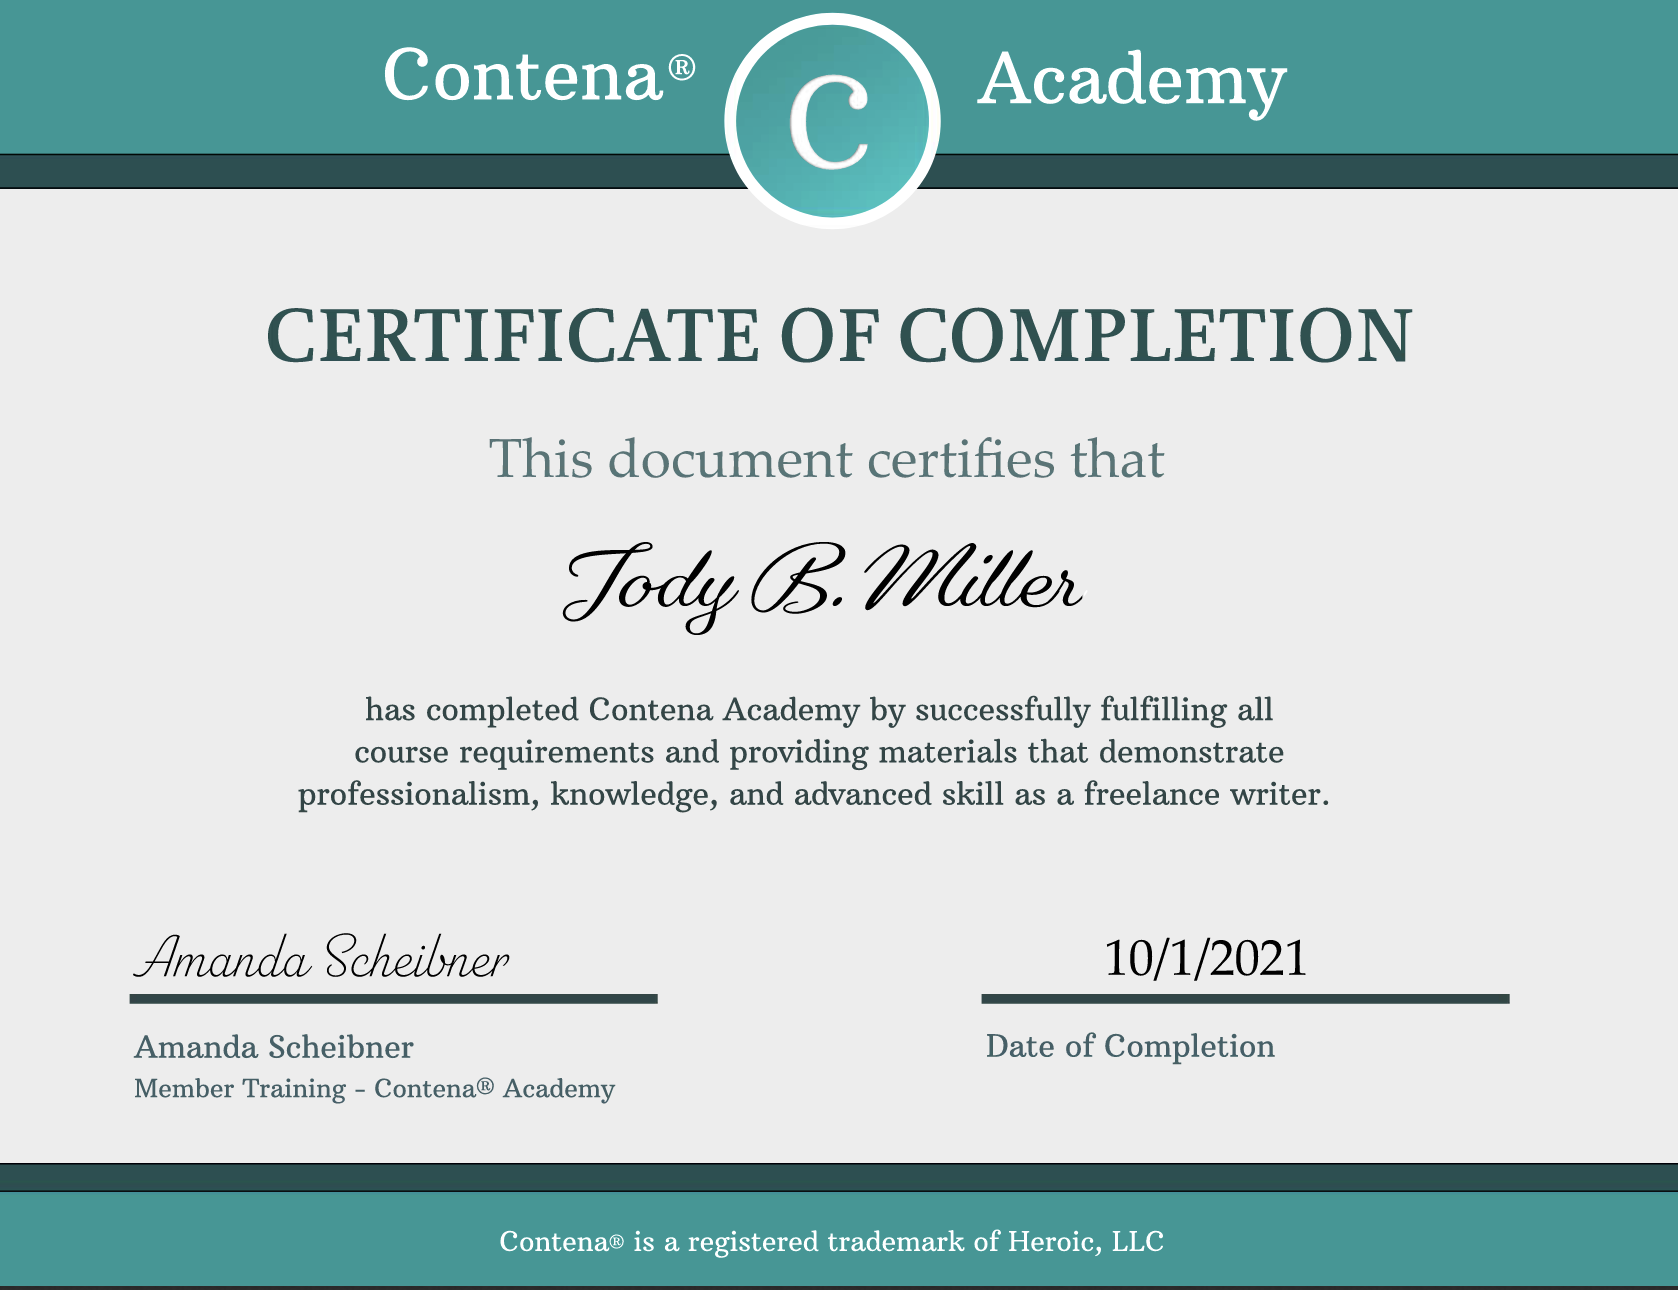 Contena Professional Freelance Writer Academy Completion